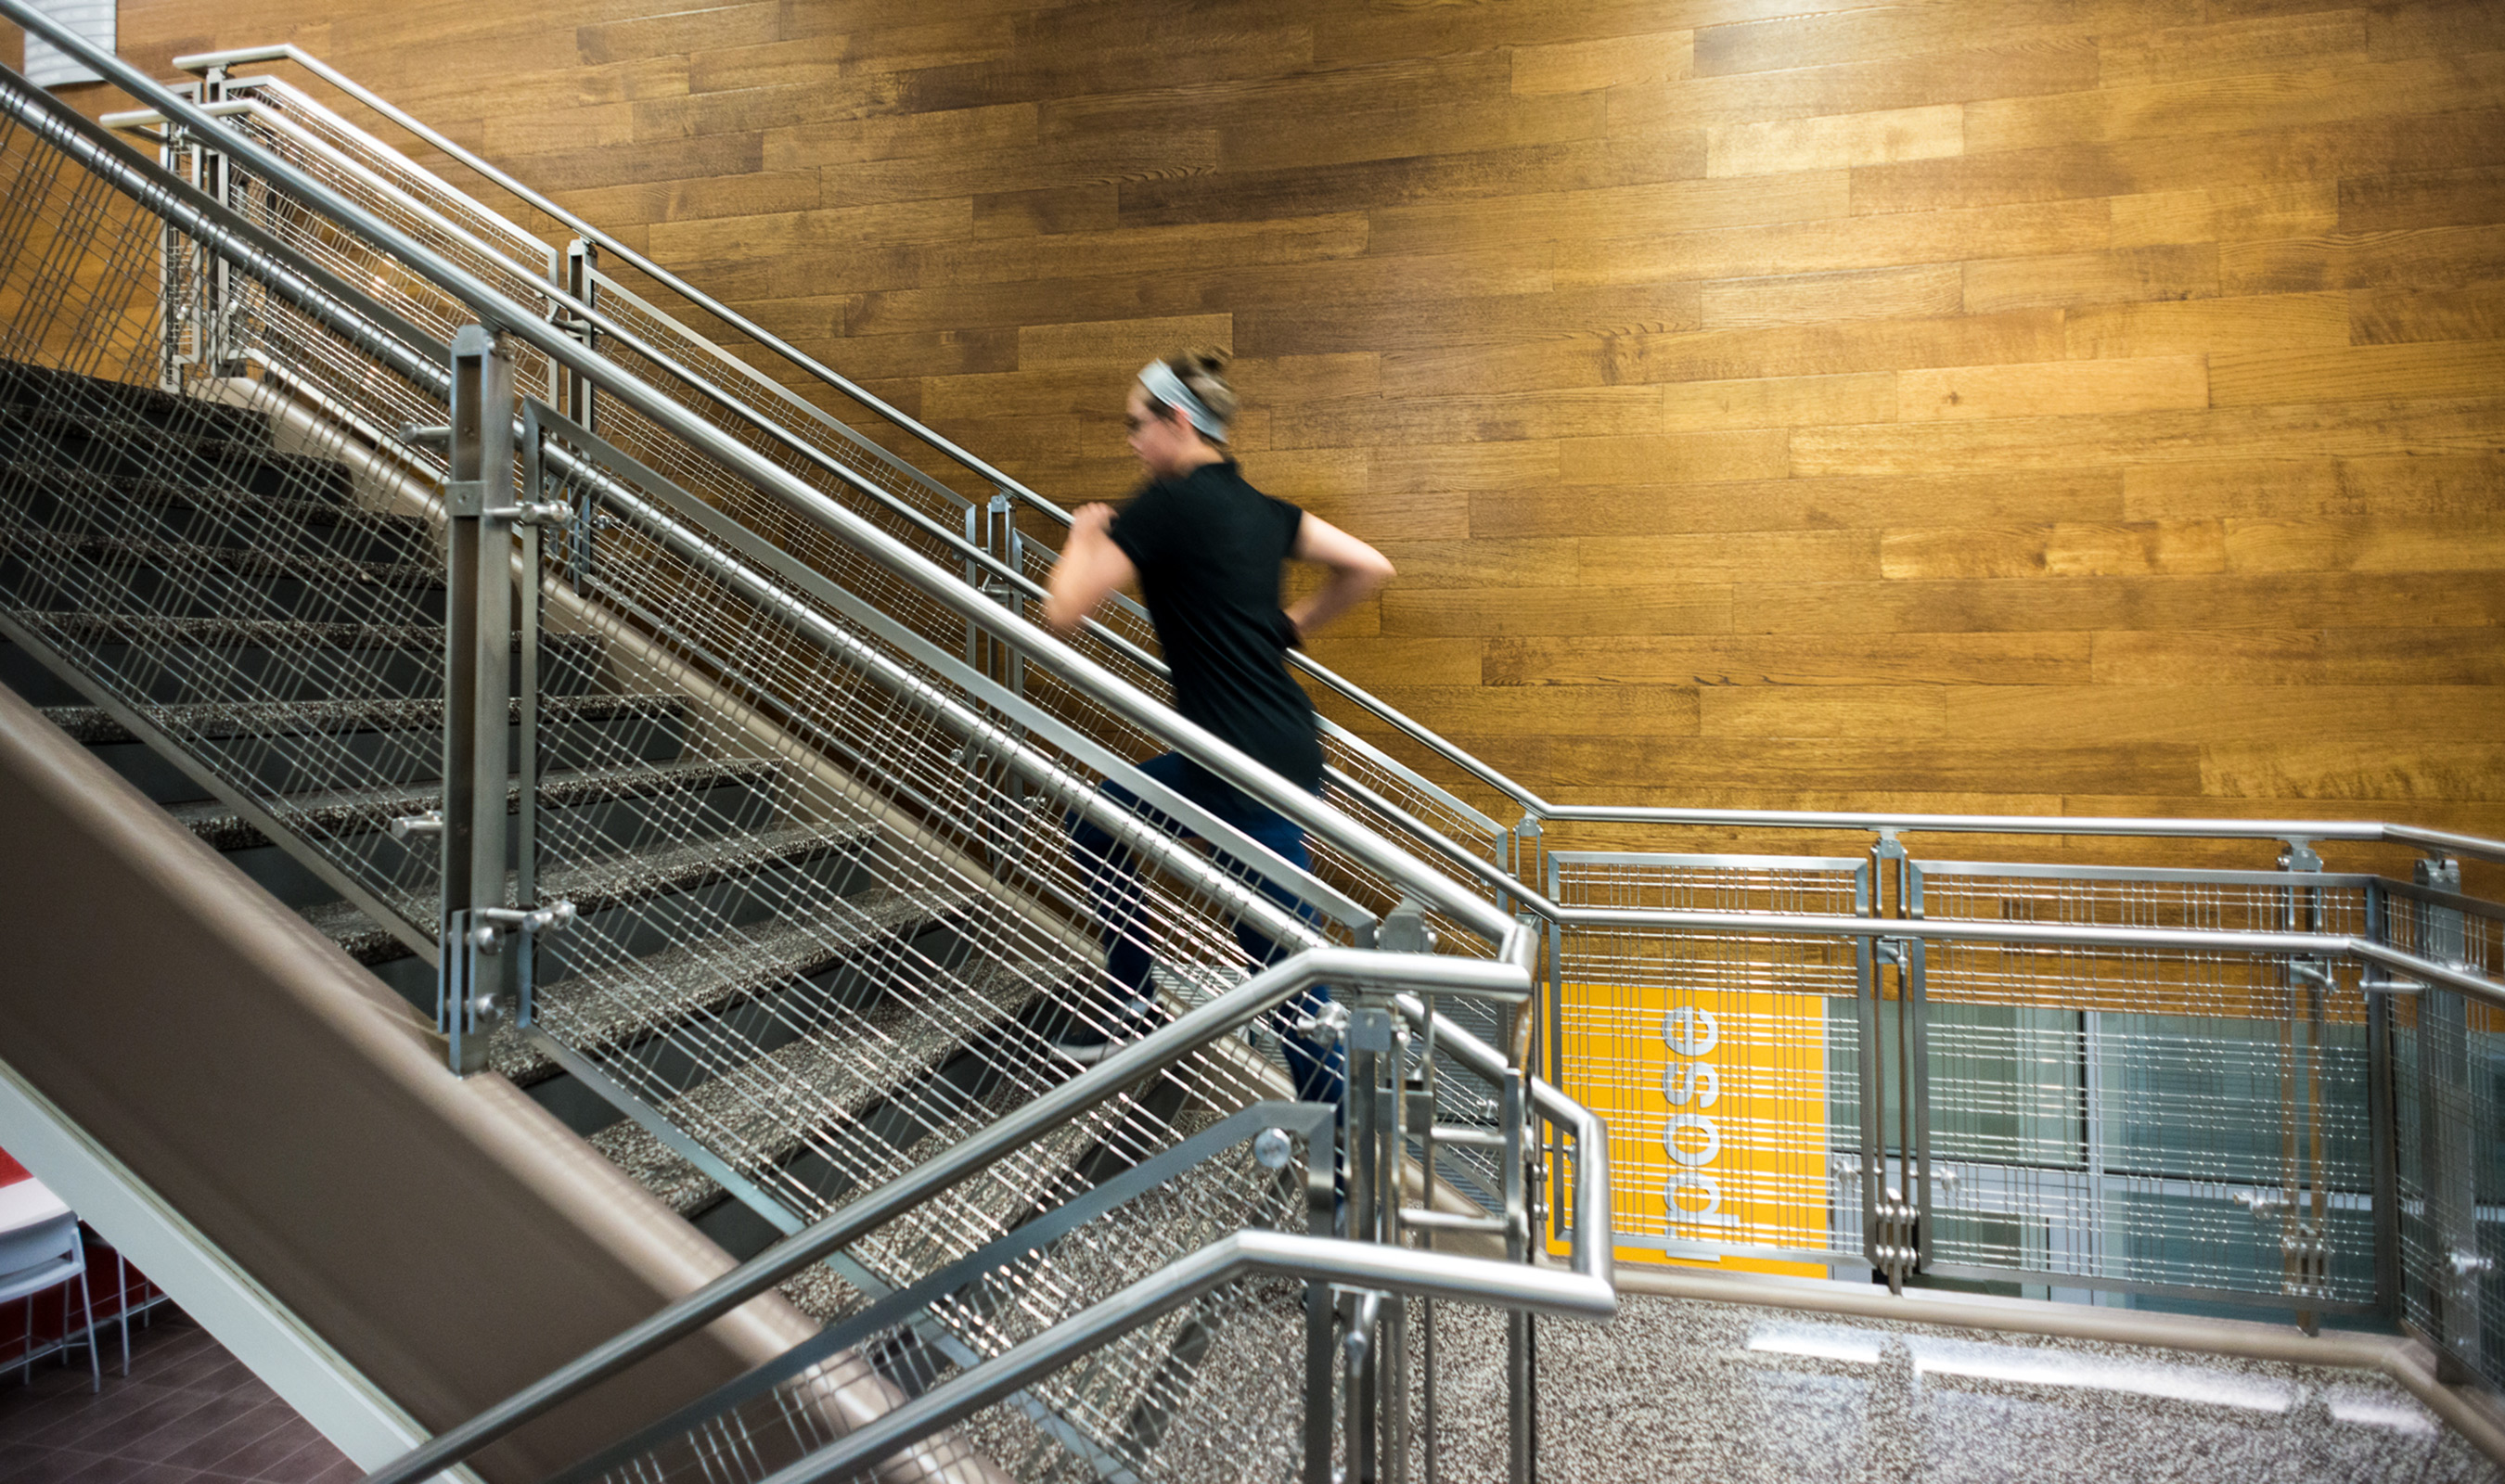 Austin Community College's Elgin Campus was designed with railings using Banker Wire stainless steel wire mesh